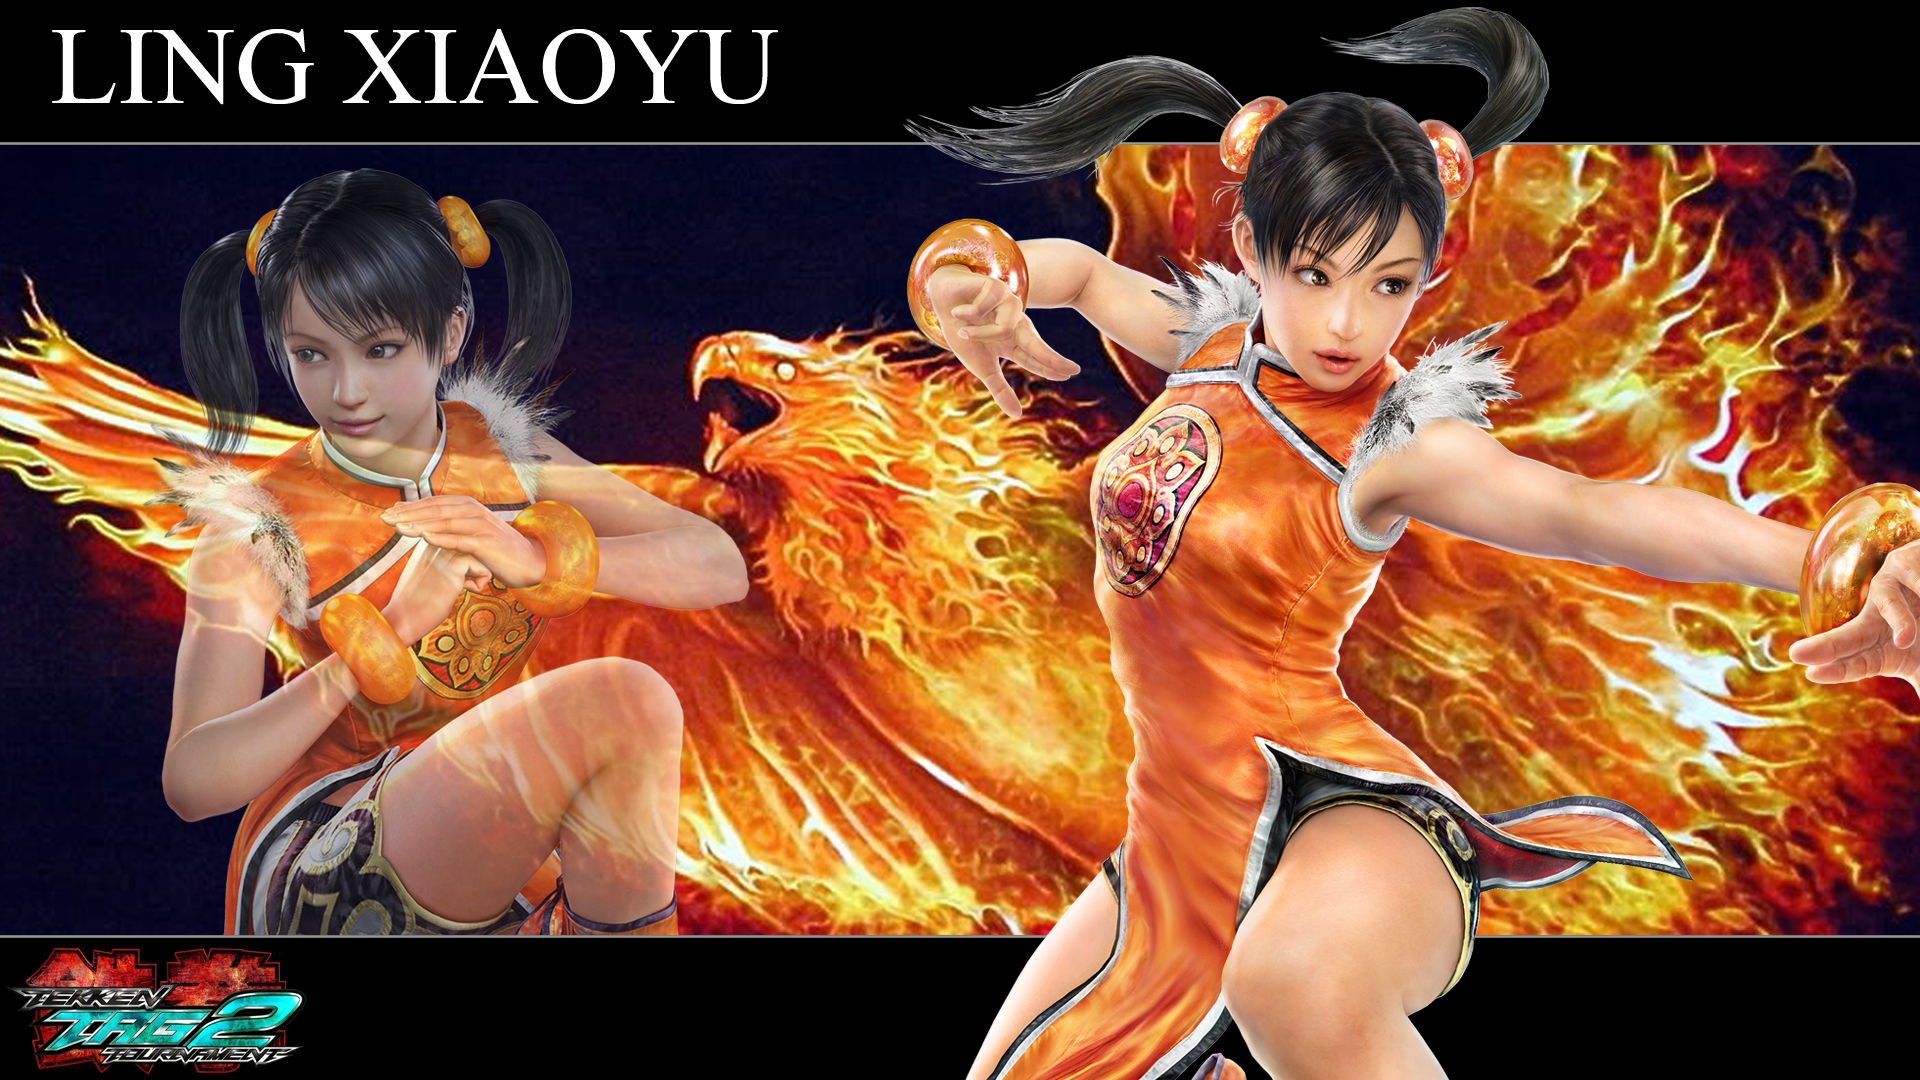 Ling Xiaoyu Wallpaper By Tgrrr89 On Deviantart Images, Photos, Reviews